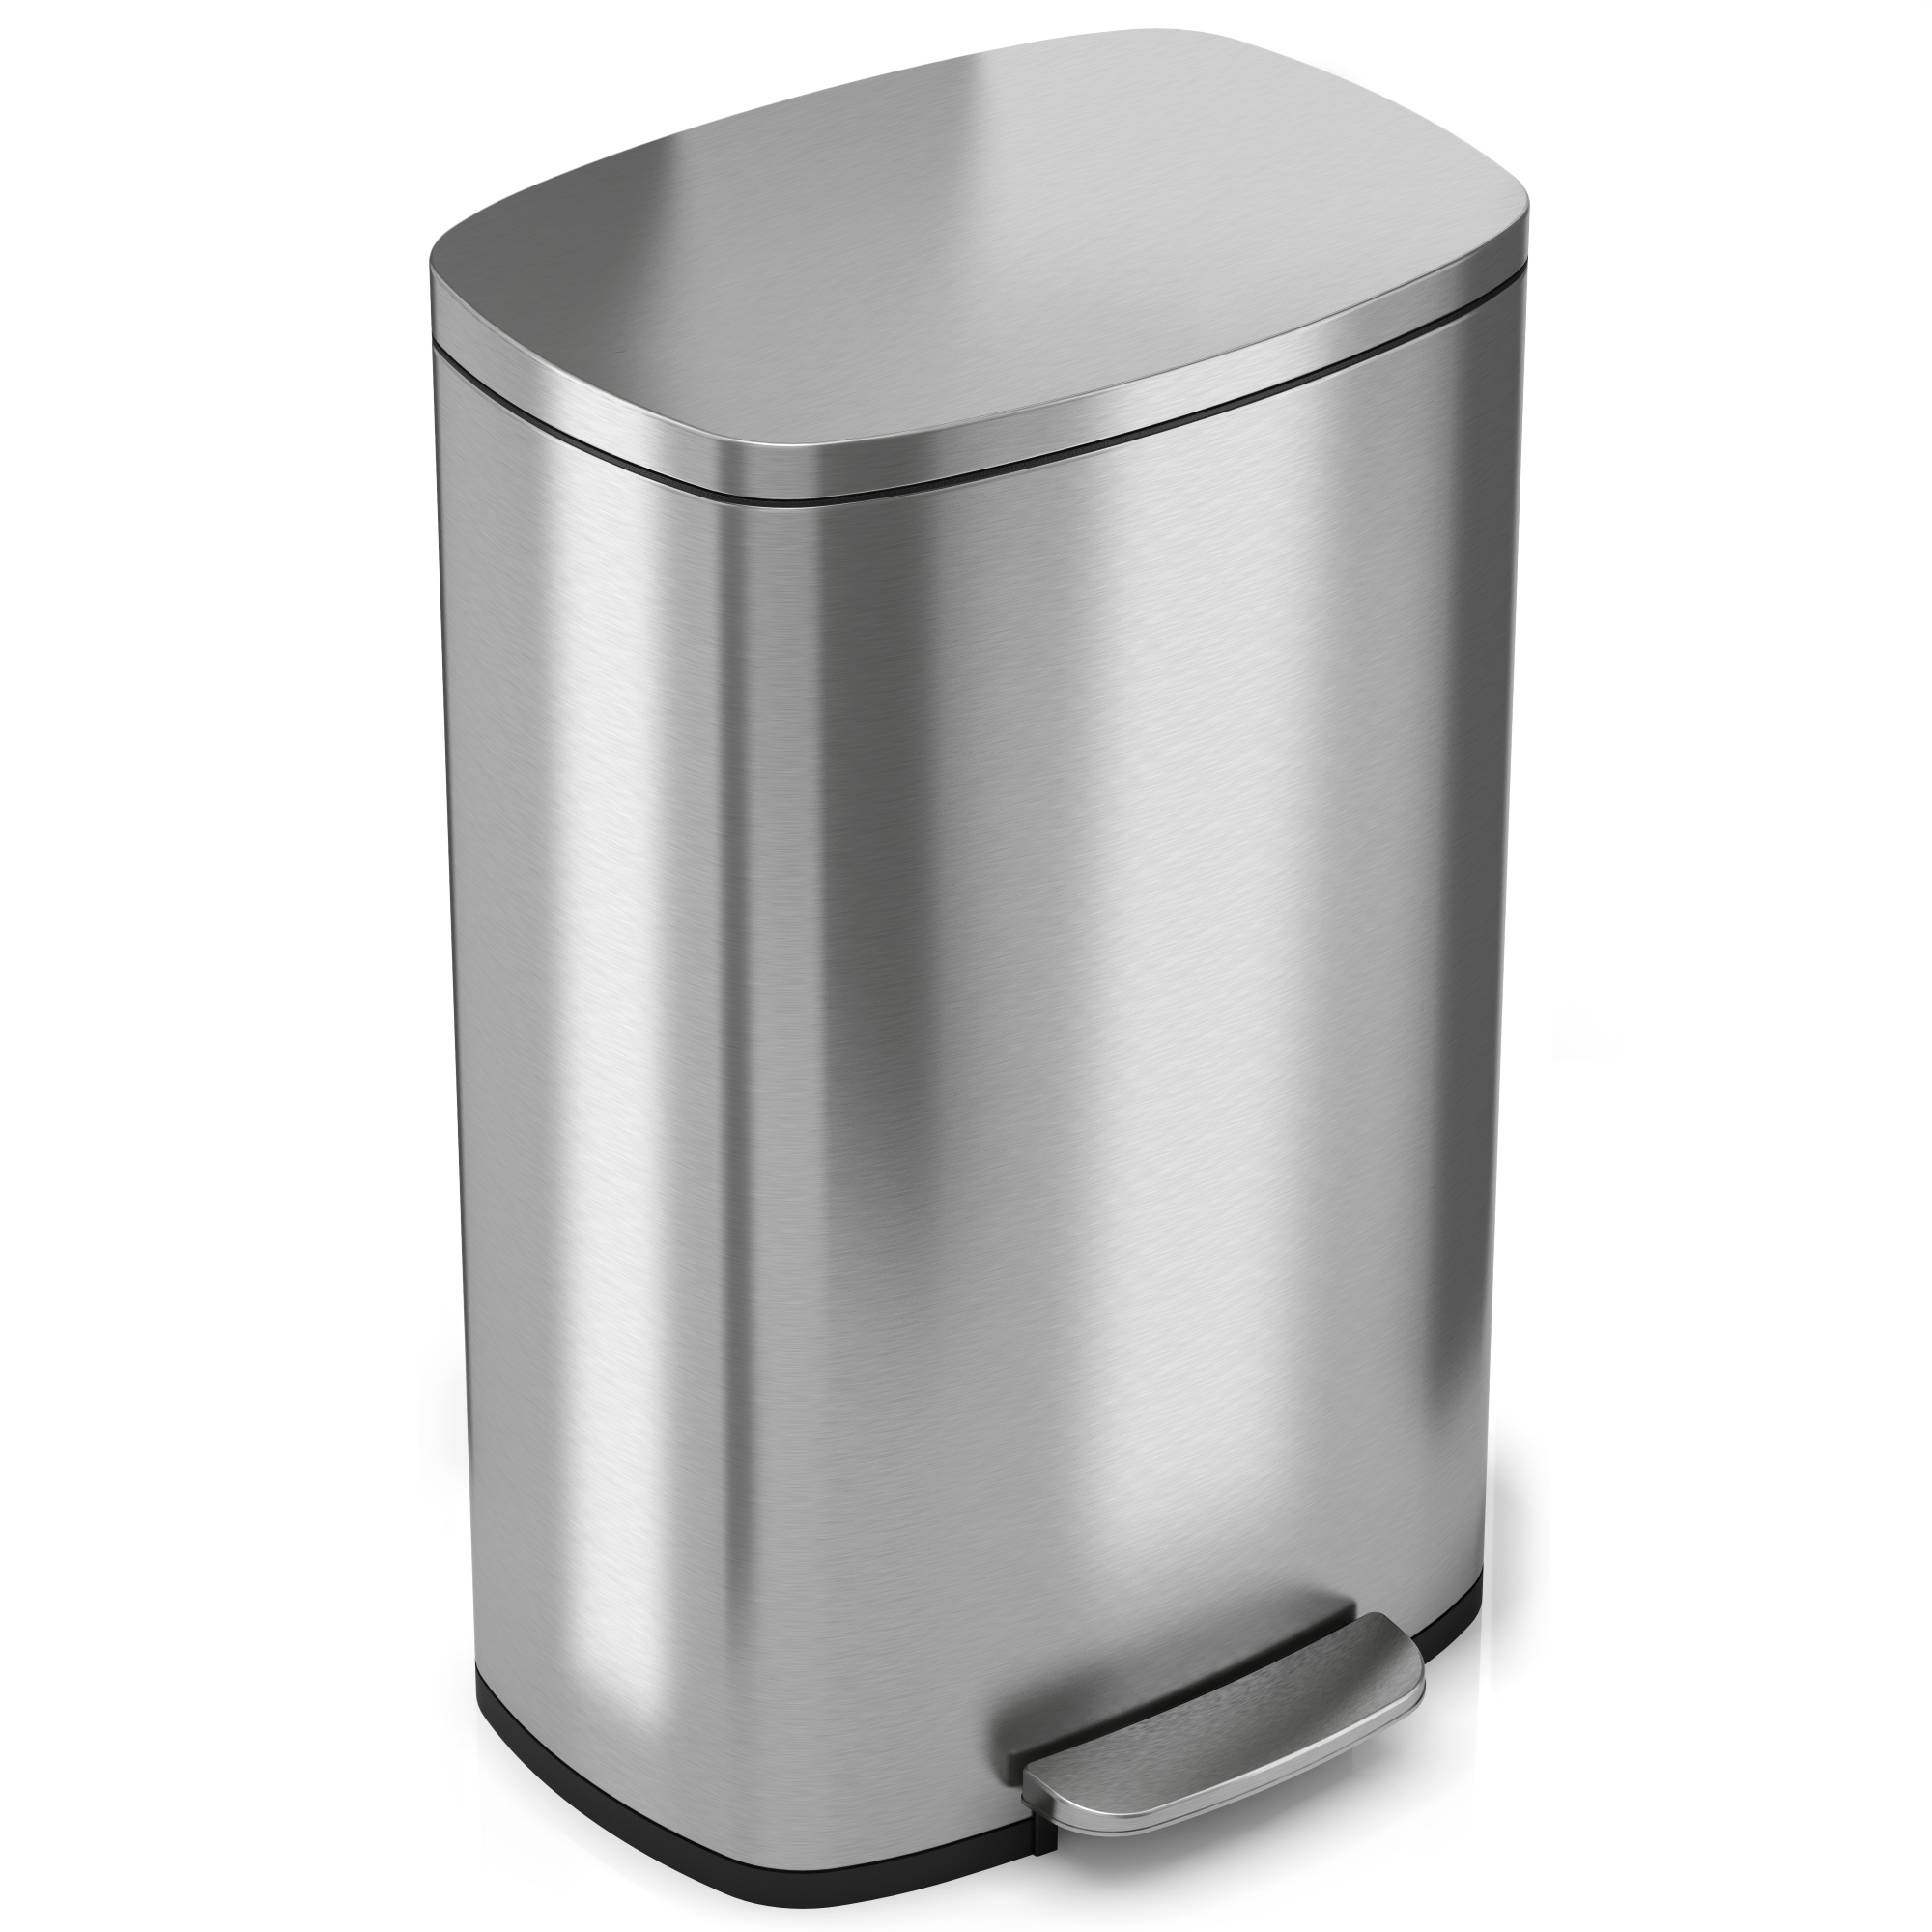 50 Liter SoftStep Stainless Steel Step Kitchen Trash Can by